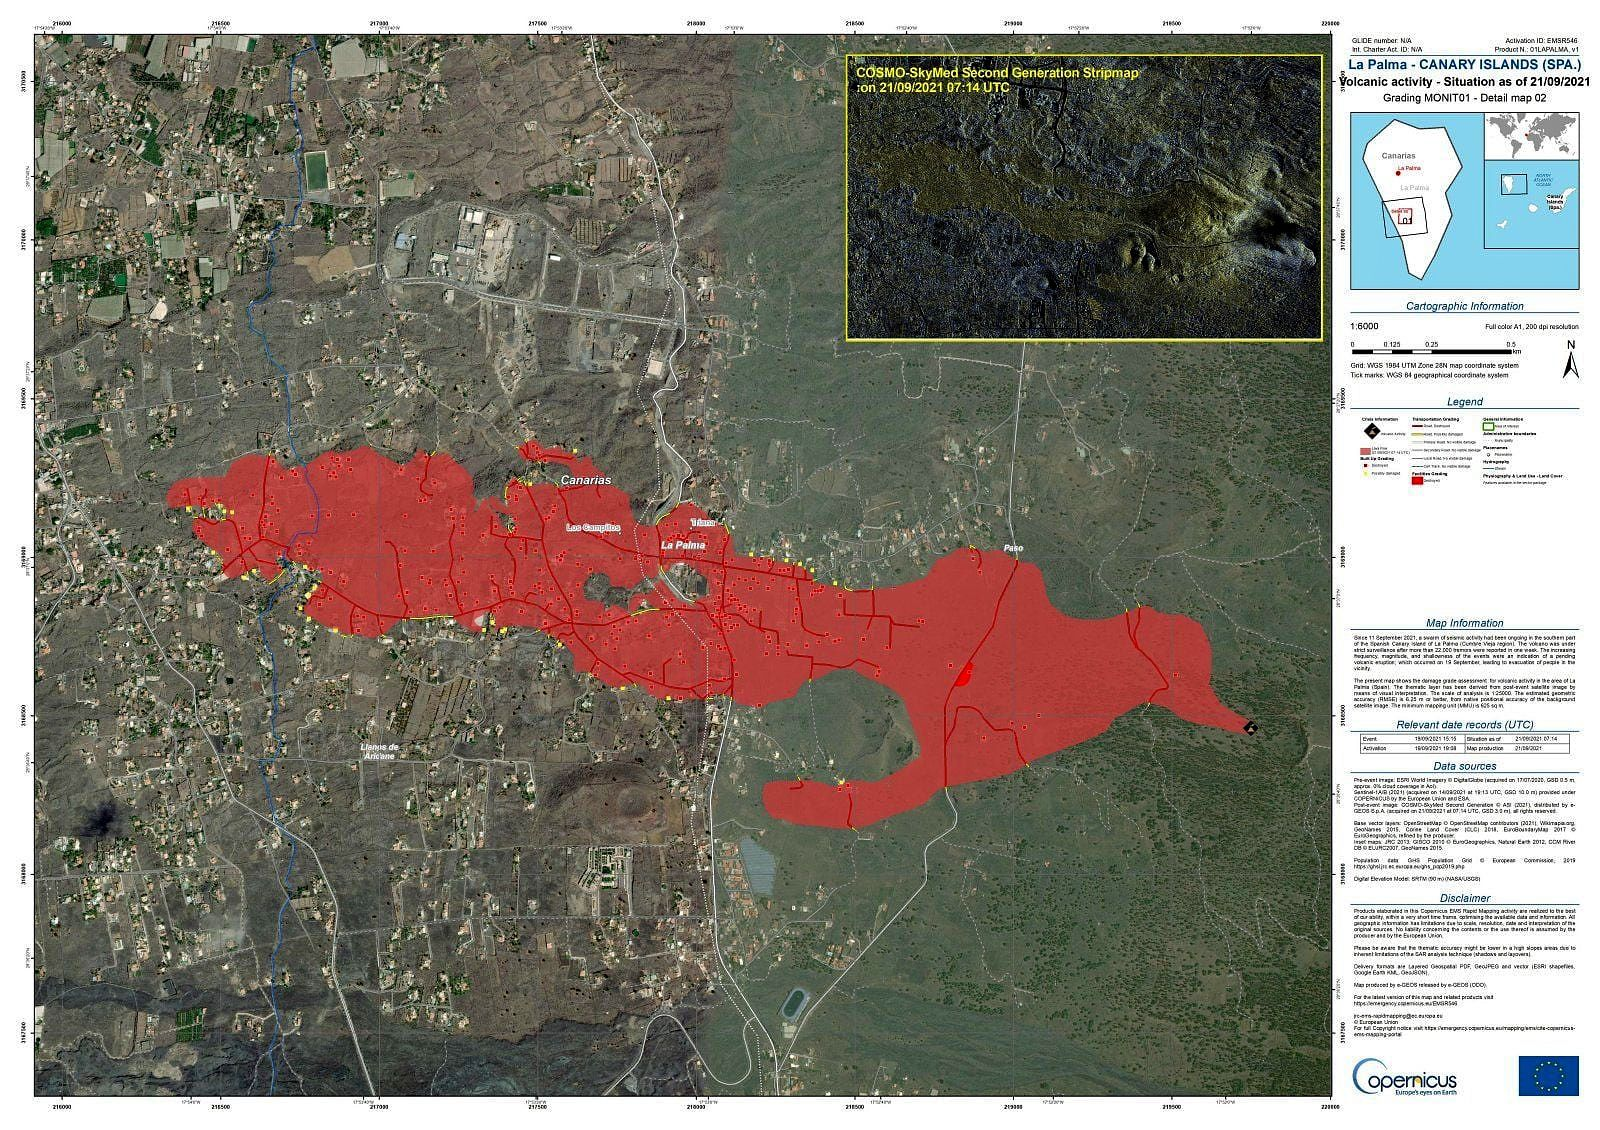 La Palma - The area affected by the lava flows reaches 154 hectares (source Copernicus EMS - 22.09.2021) - click to enlarge